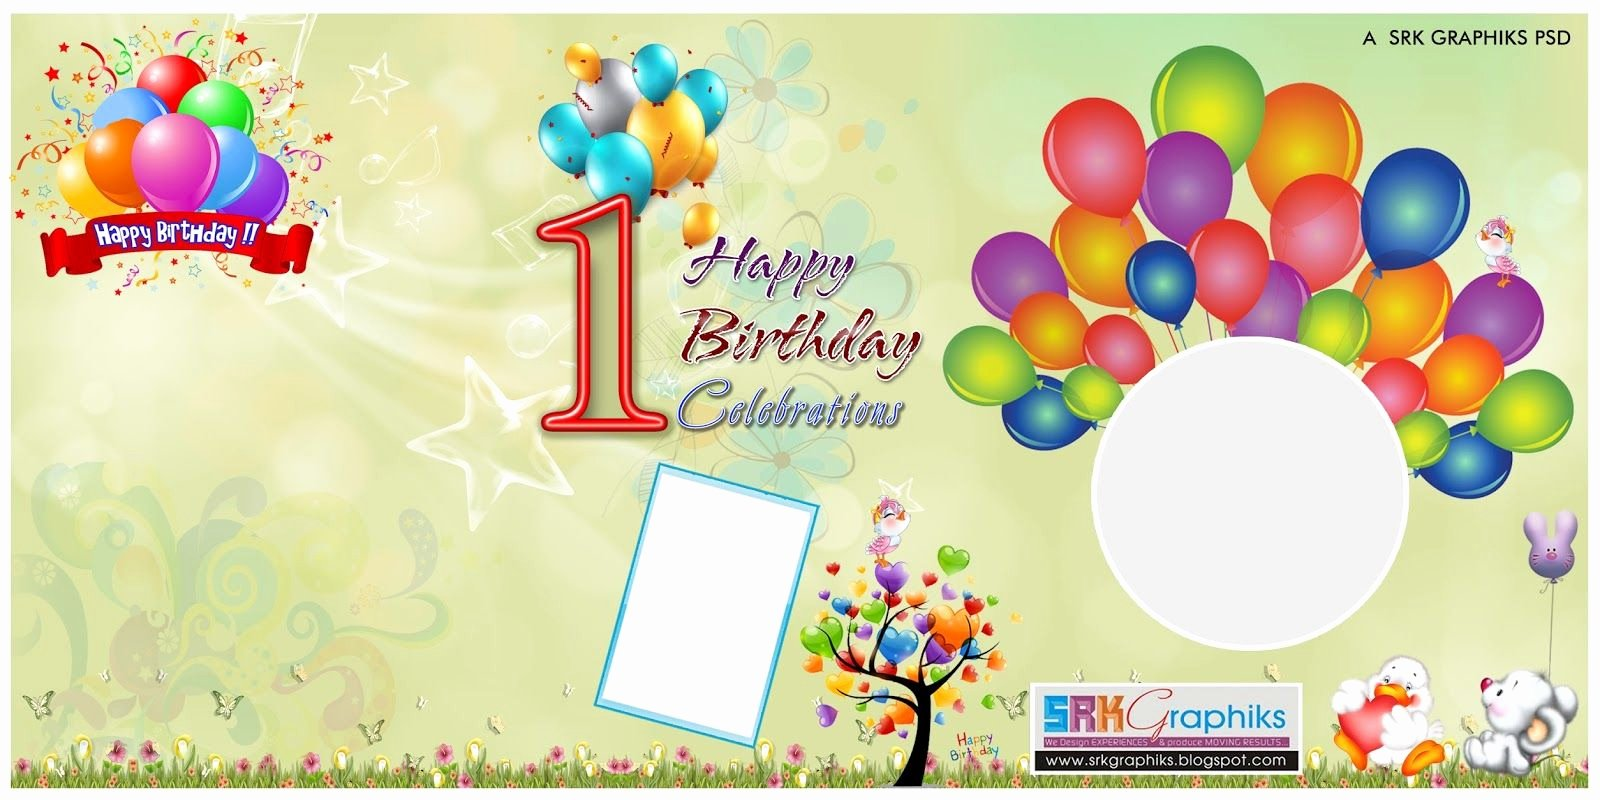 Happy Birthday Banner Template Inspirational Birthday Banner Design Shop Template for Free